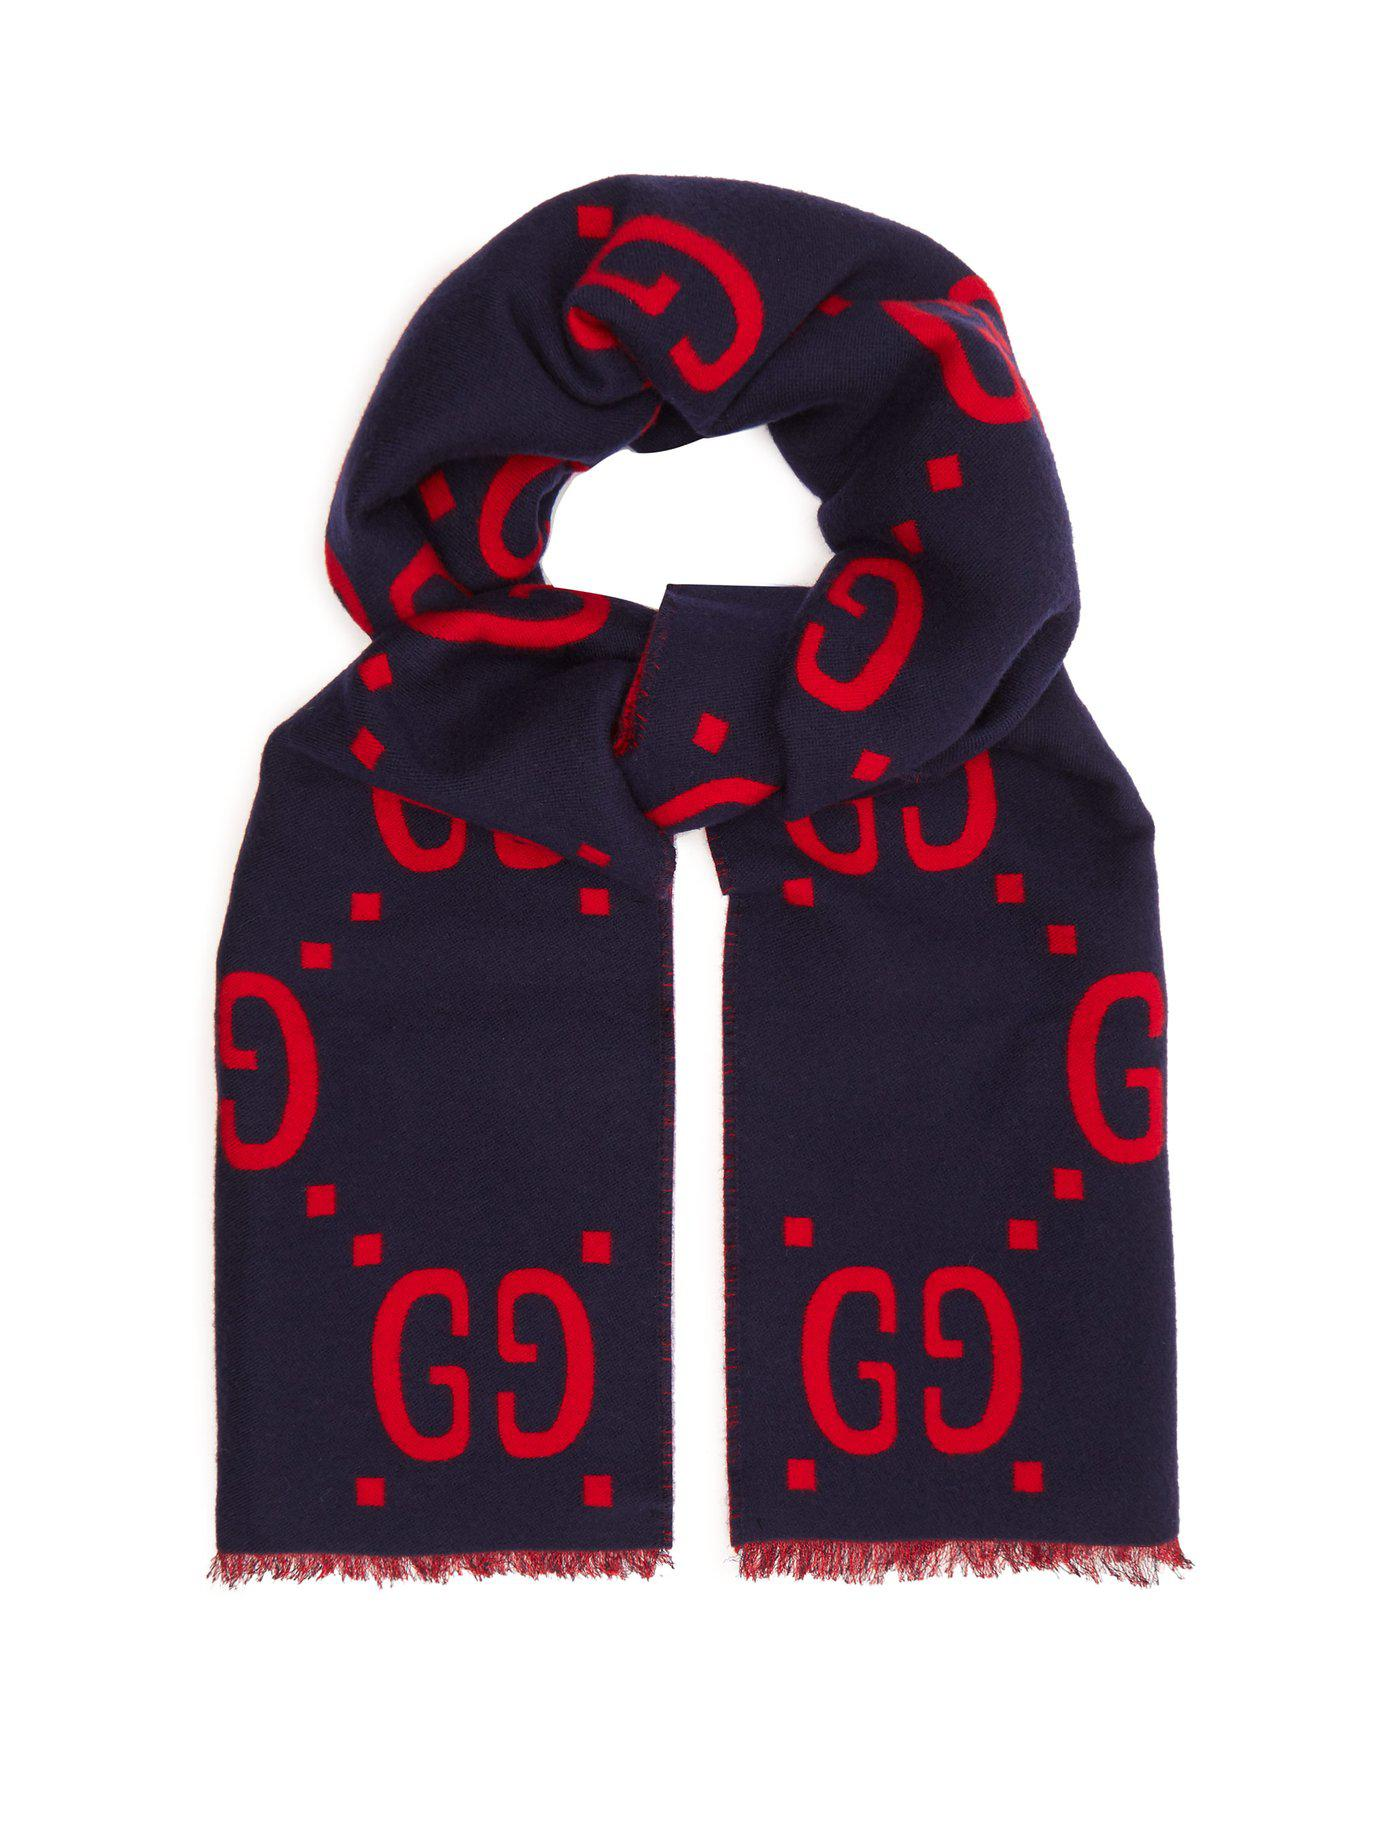 cd67ba078e507 Lyst - Gucci Gg Jacquard Wool Blend Scarf in Blue for Men - Save 20%